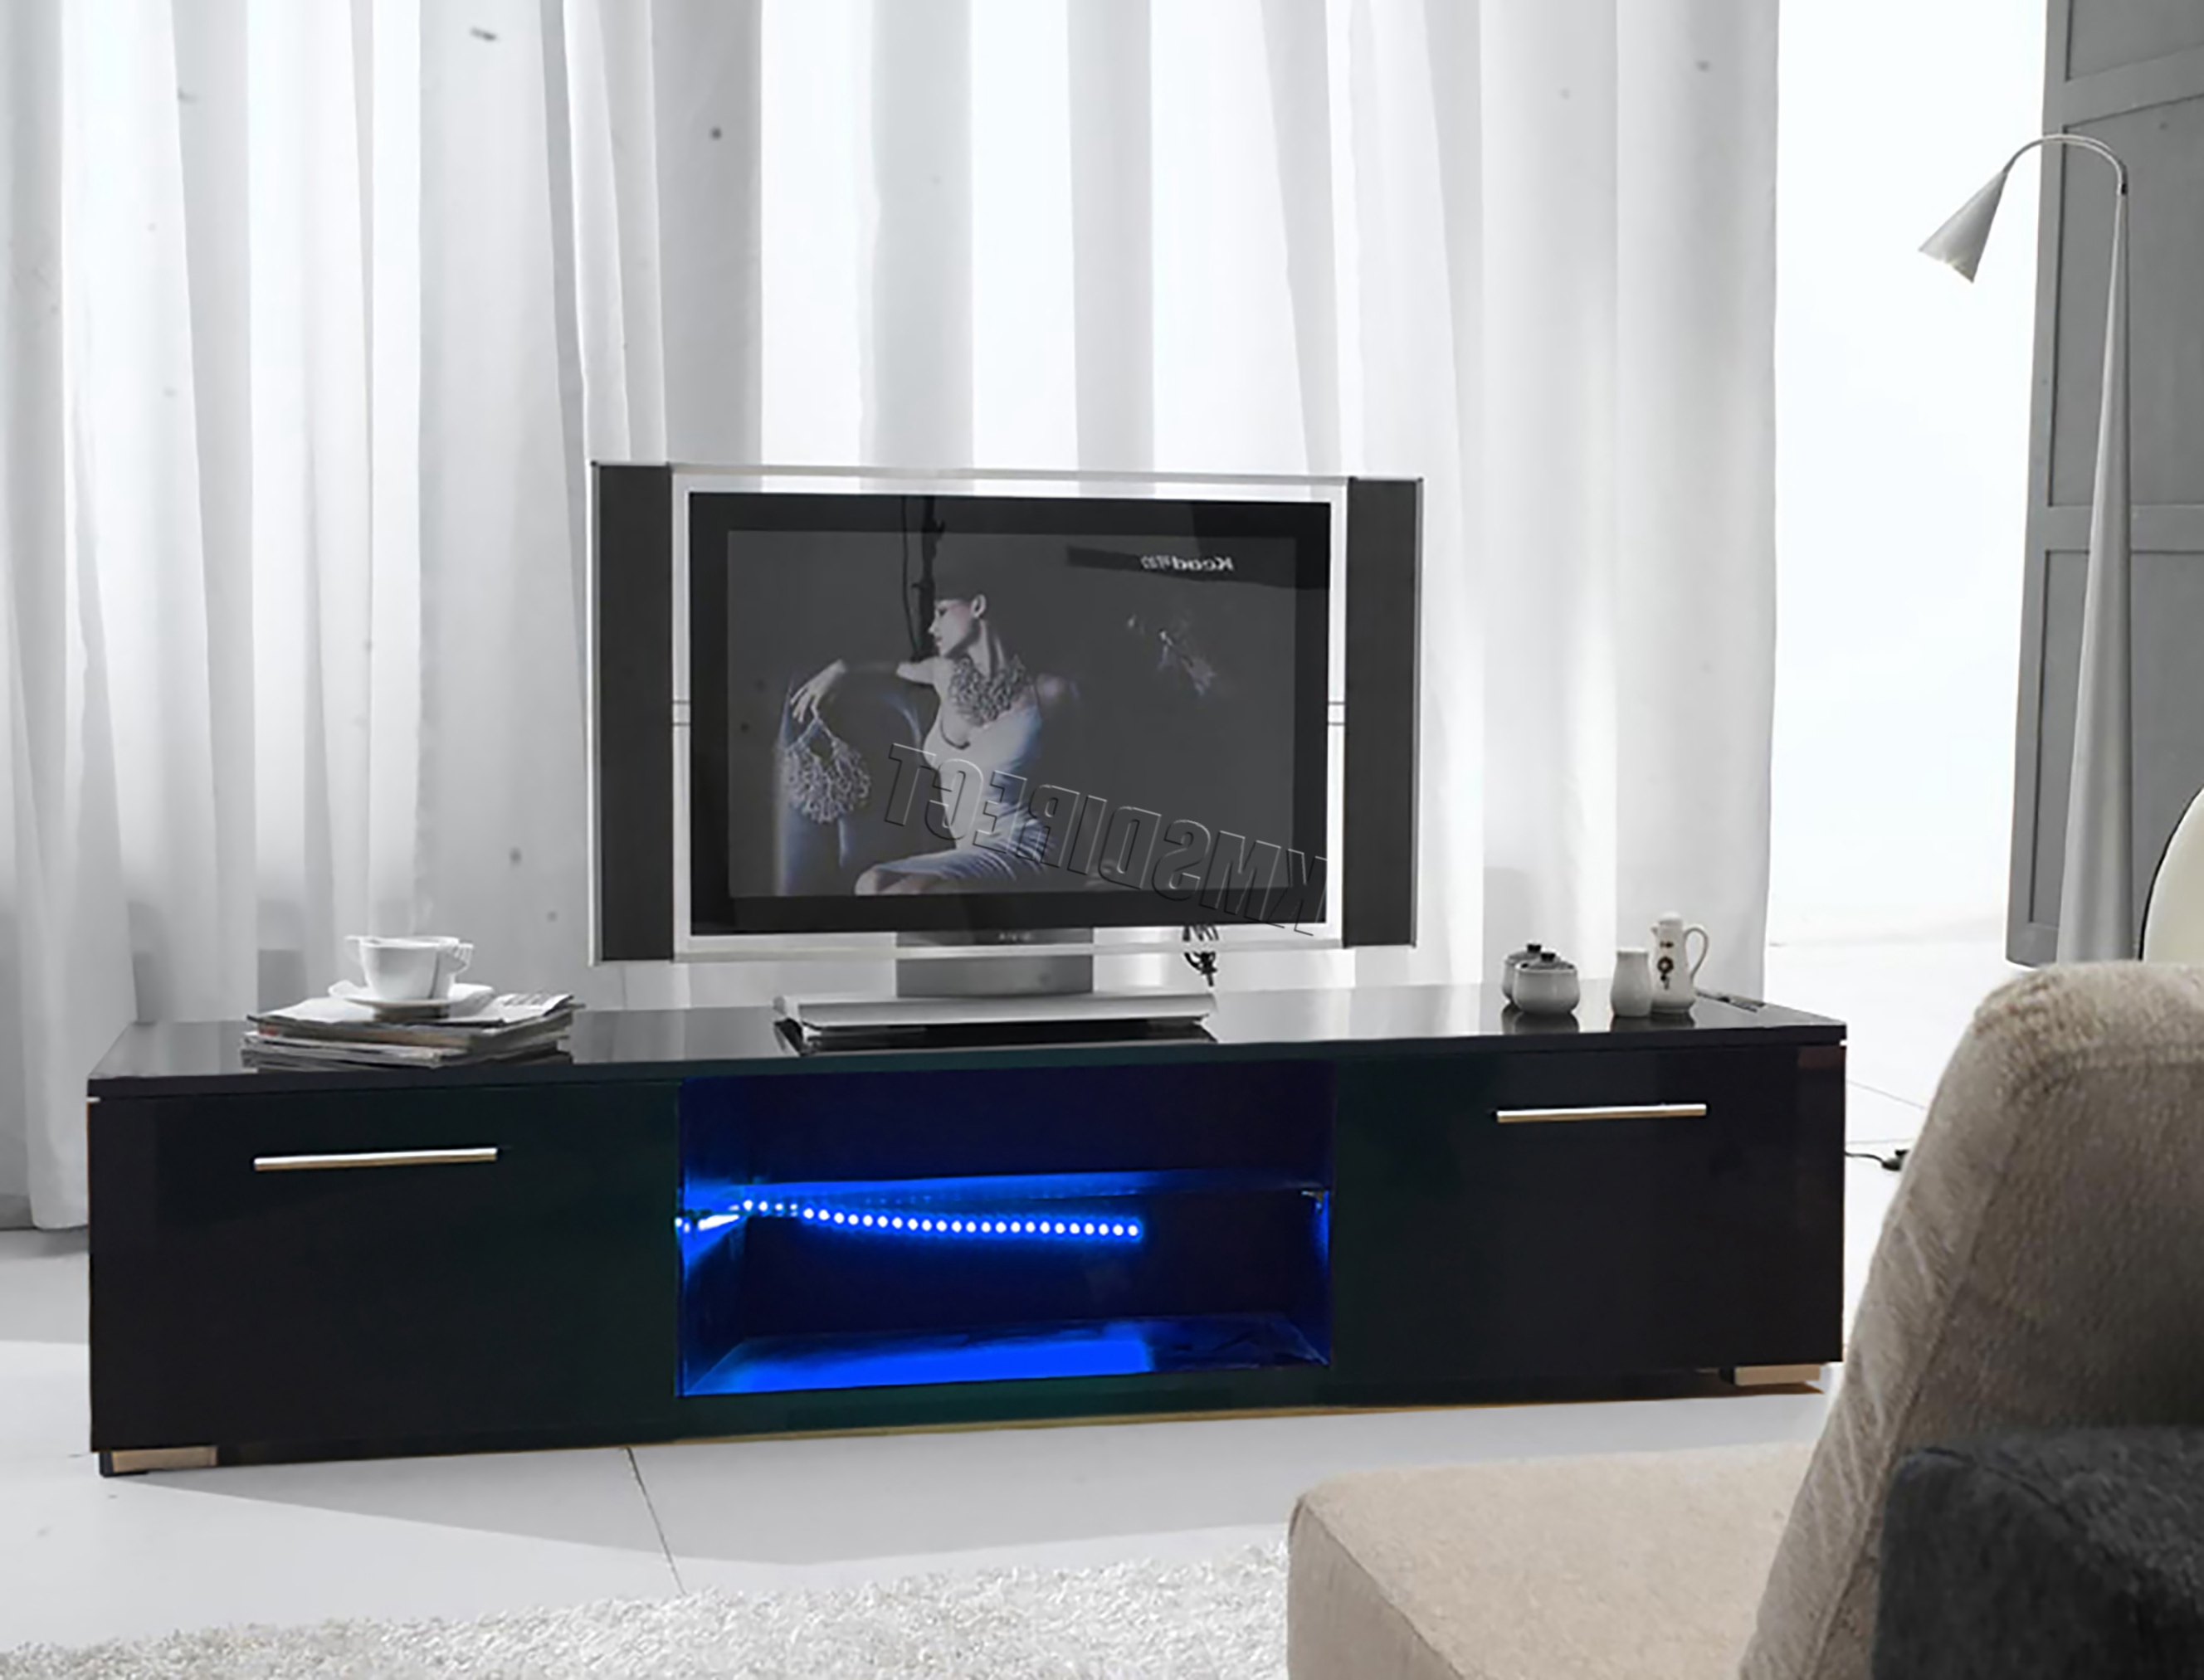 Westwood Modern Led Tv Unit Stand Cabinet – High Gloss Doors Matte In Famous Black Gloss Tv Stands (View 19 of 20)